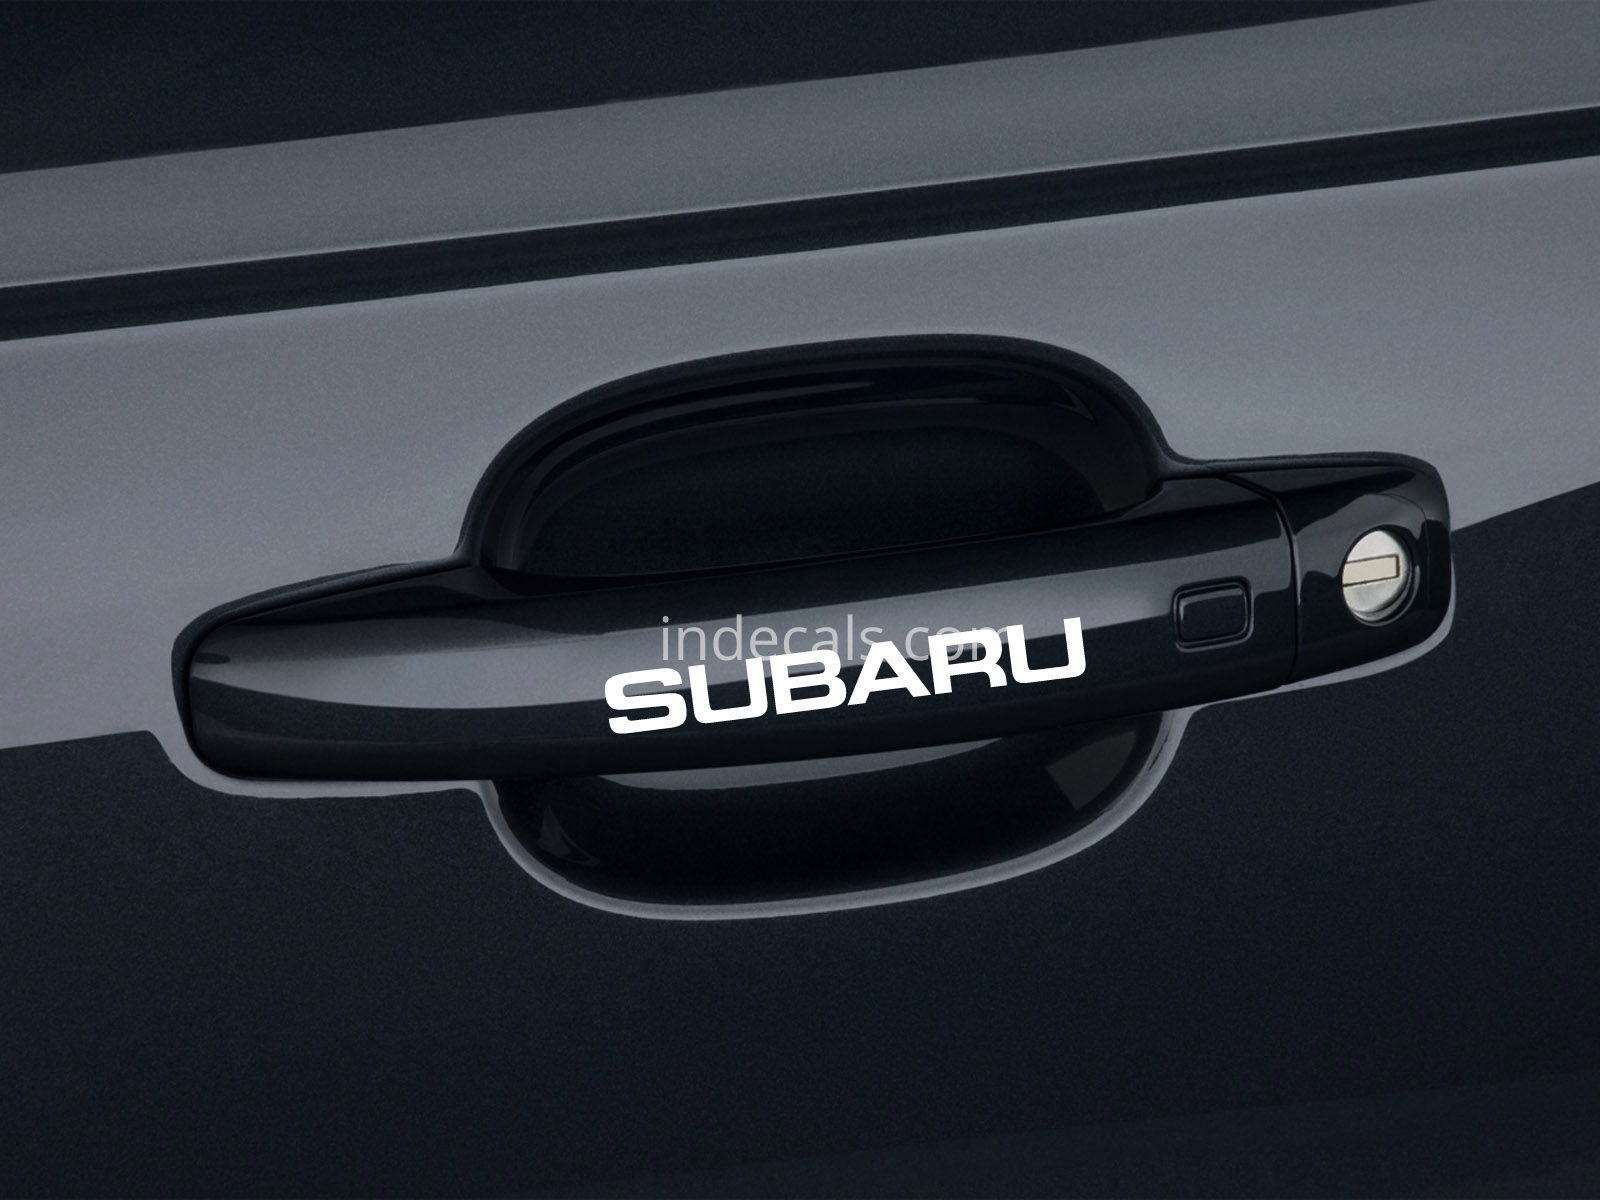 6 x Subaru Stickers for Door Handles - White